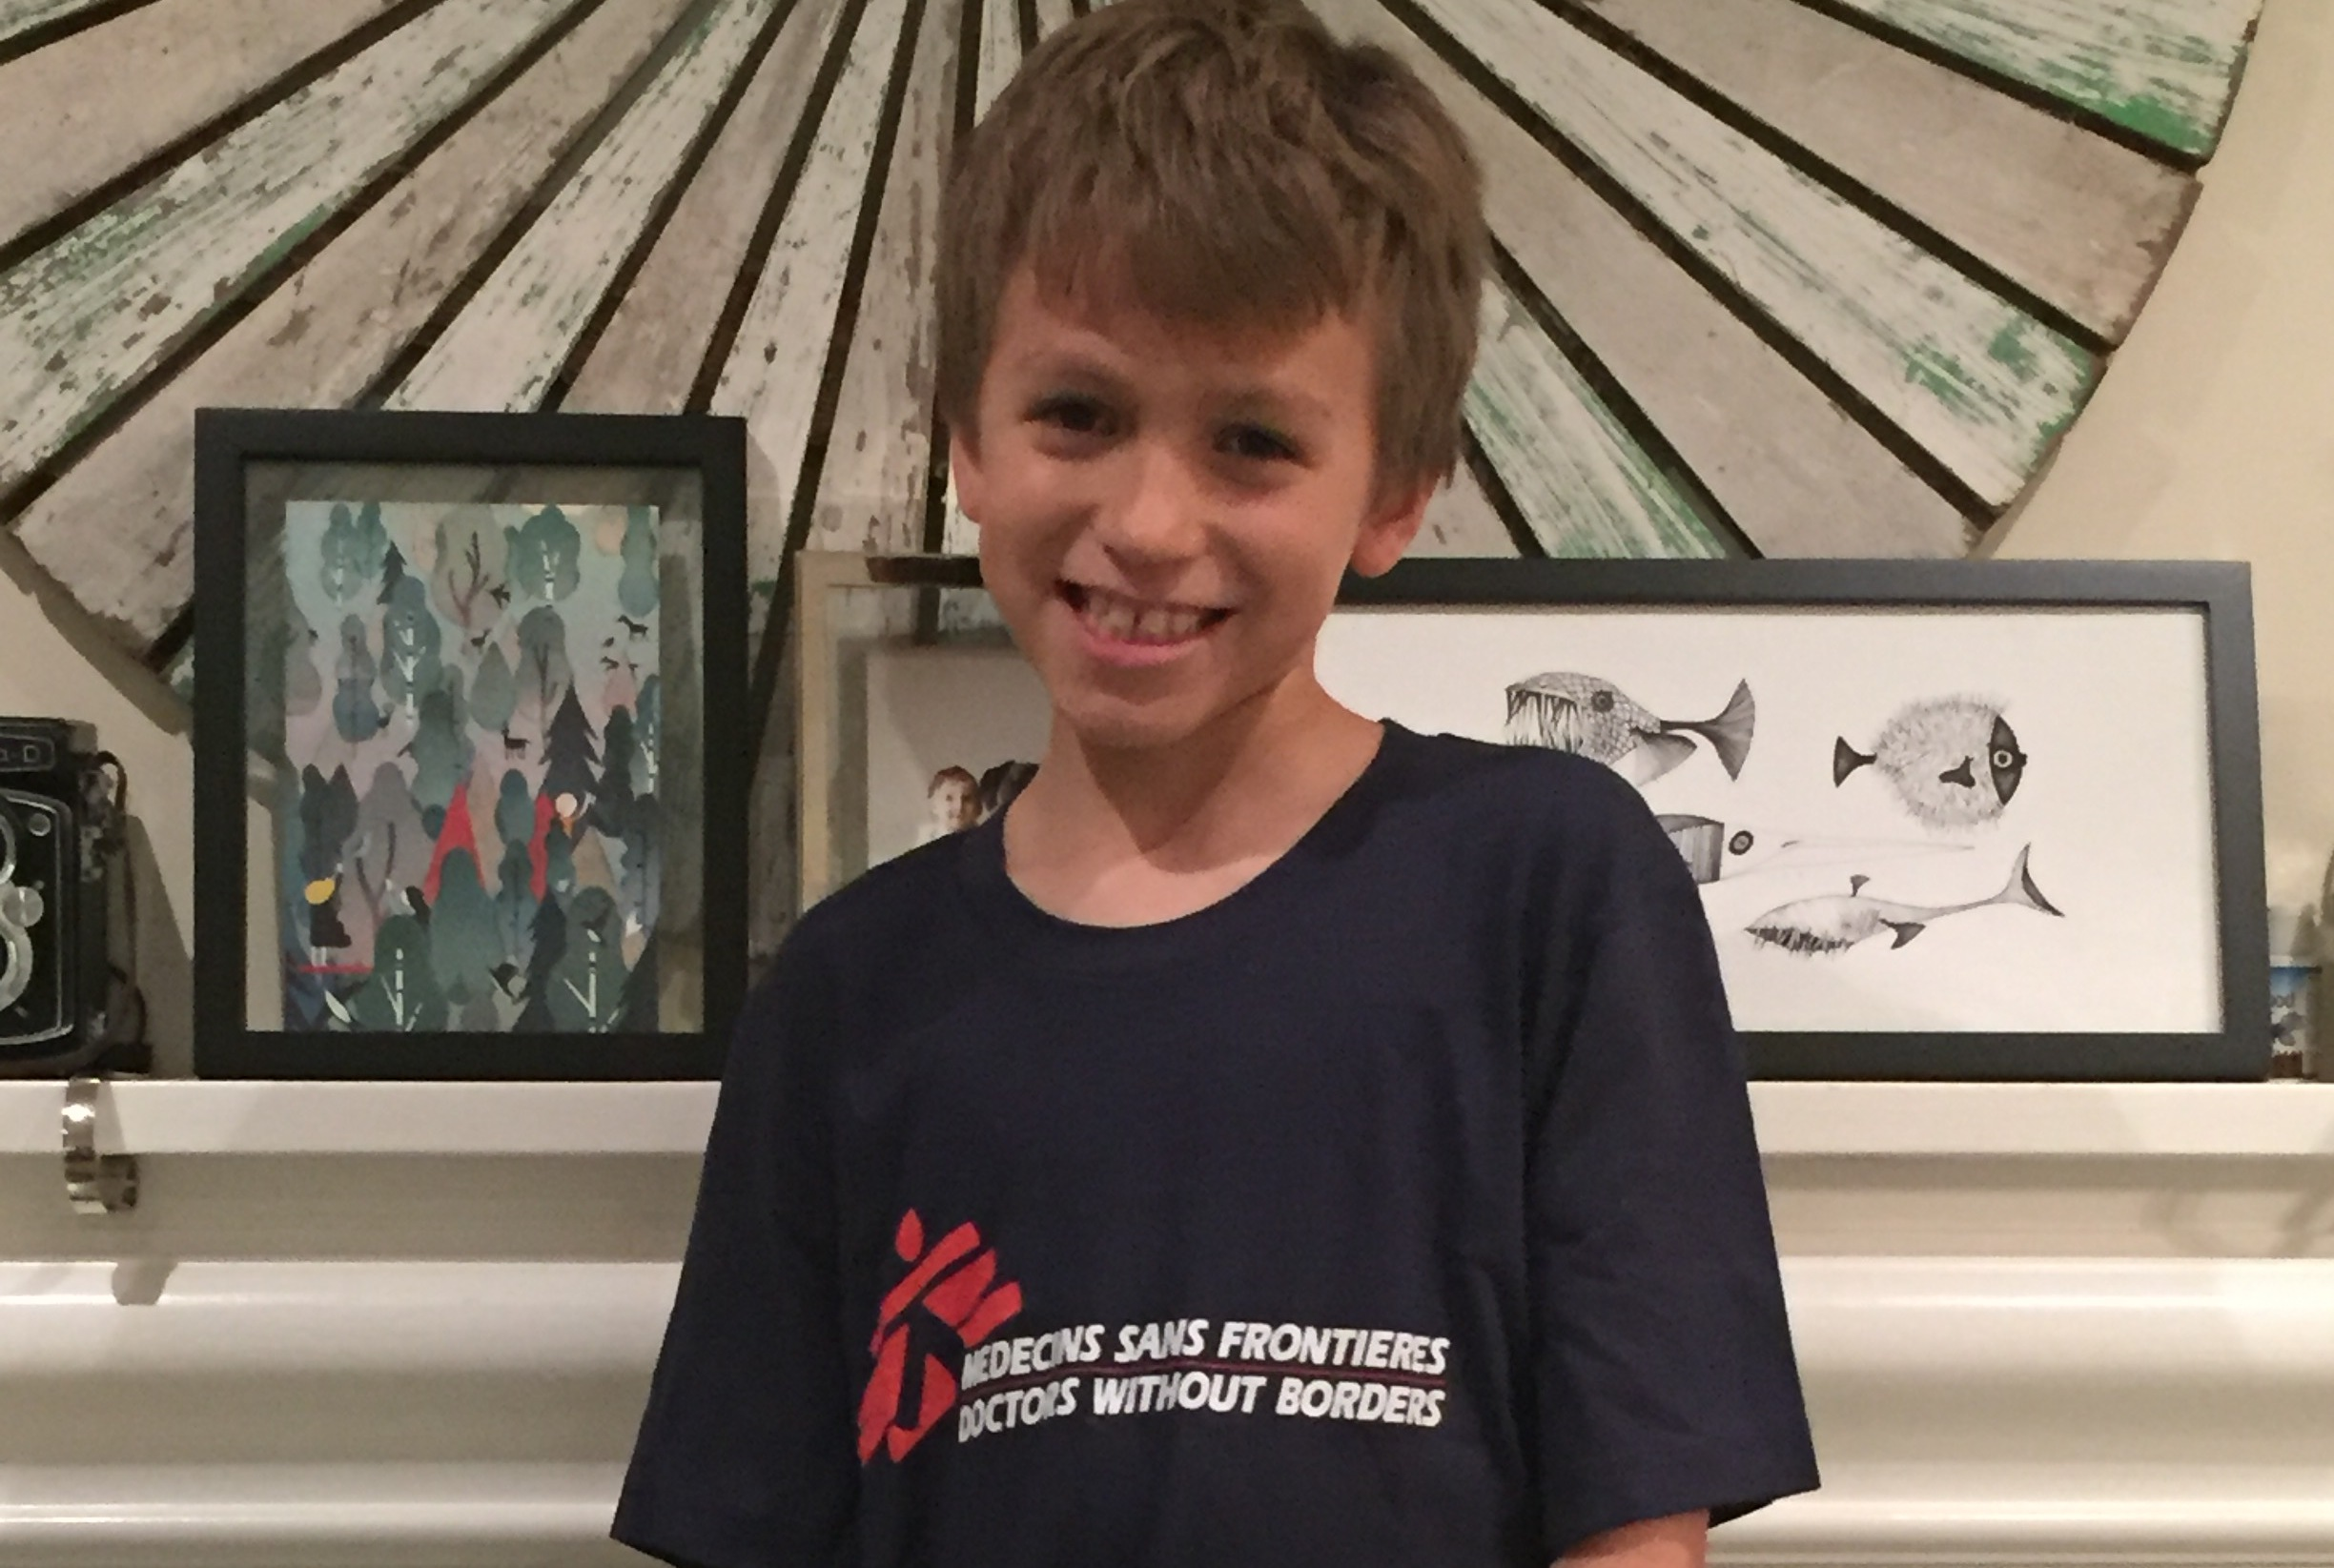 Aiden Ospina, from Brampton, Ontario, was inspired to participate in MSF Canada's Walk Without Borders 2015 Challenge after he read about the difficult journey of two MSF patients seeking medical care.